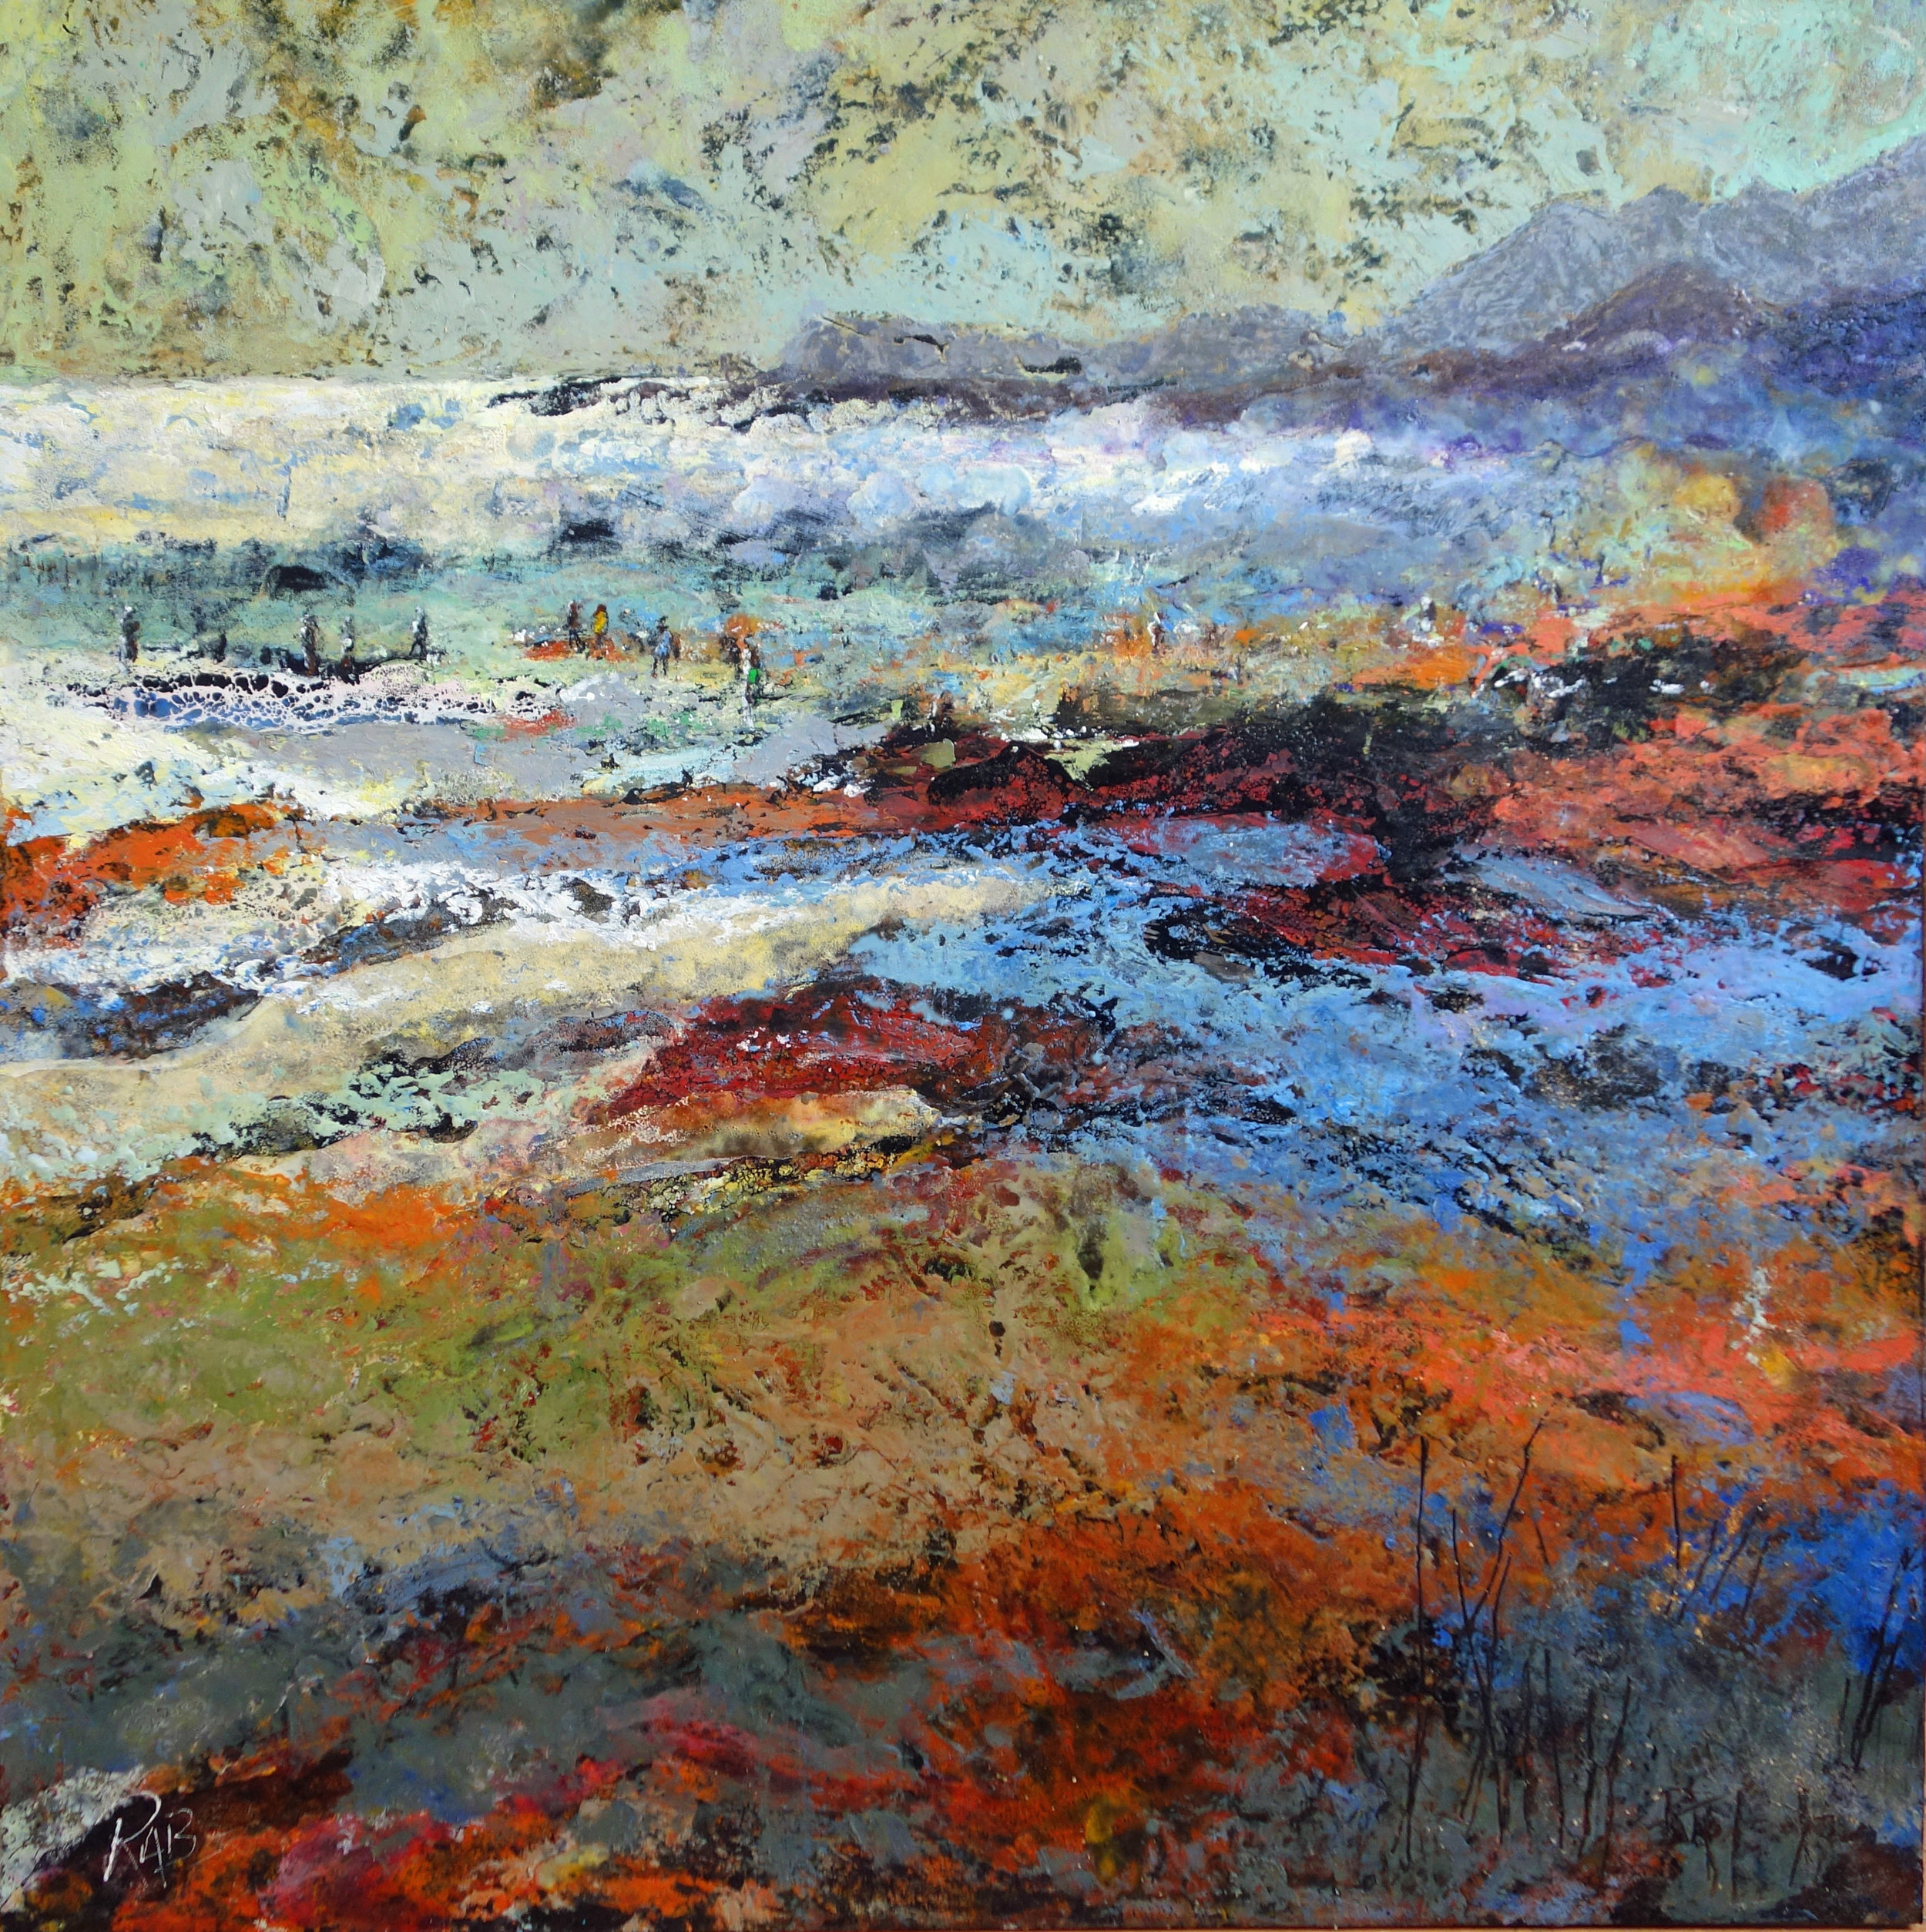 The Tide Rushing In  Oil based mixed media on board  75cm x 75cm  £1400